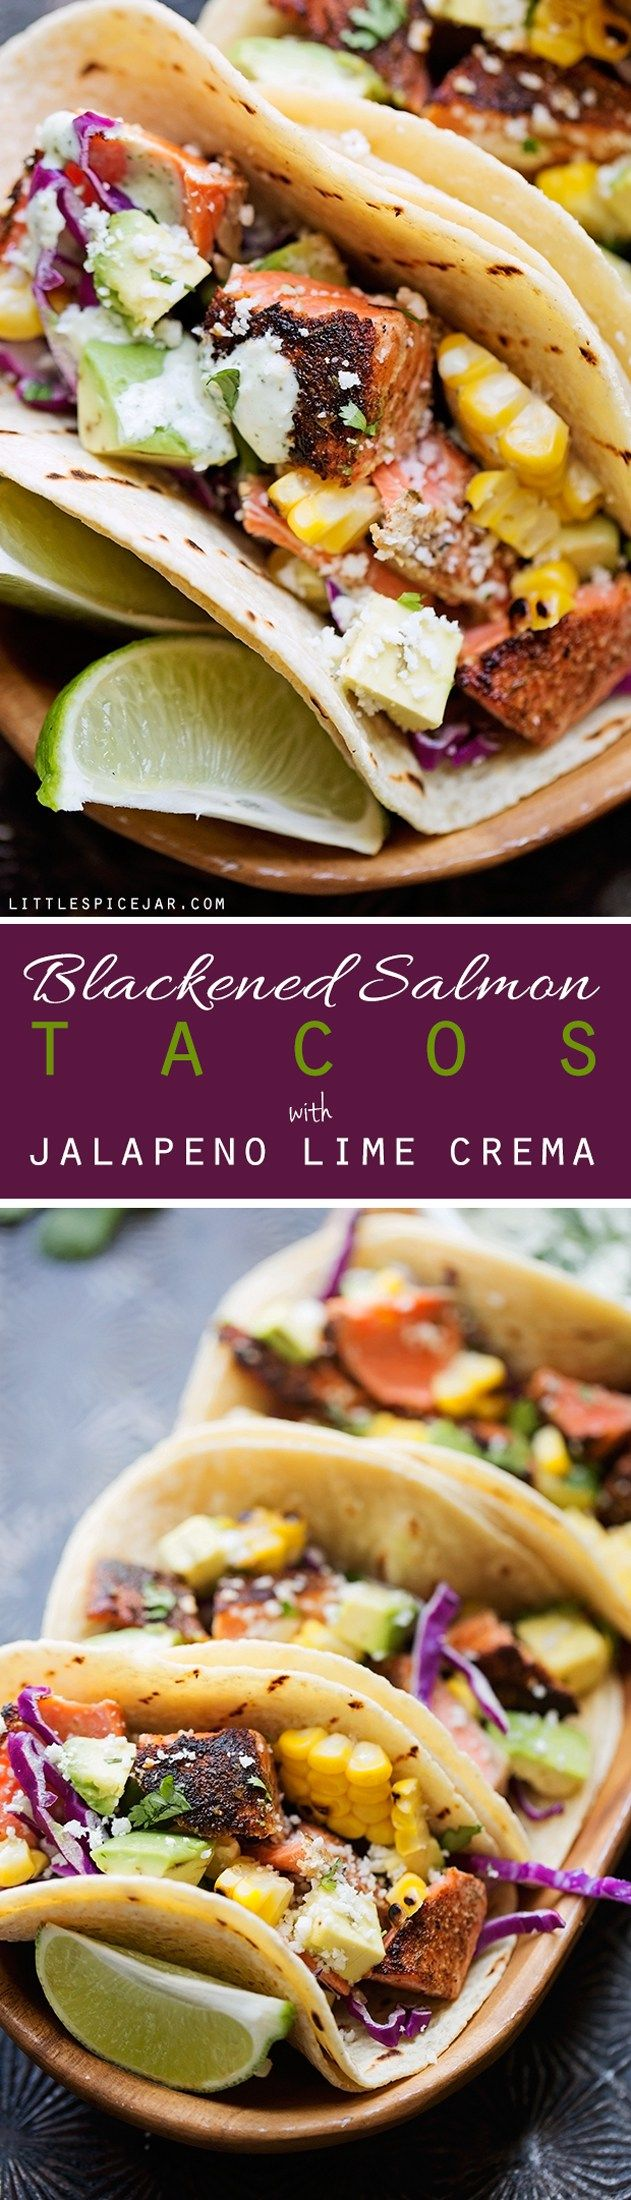 Blackened Salmon Tacos with Jalapeño Lime Crema - Easy Salmon tacos topped with your favorite taco toppings and my jalapeño lime crema! #blackenedsalmontacos #salmontacos #blackedfishtacos | Littlespicejar.com